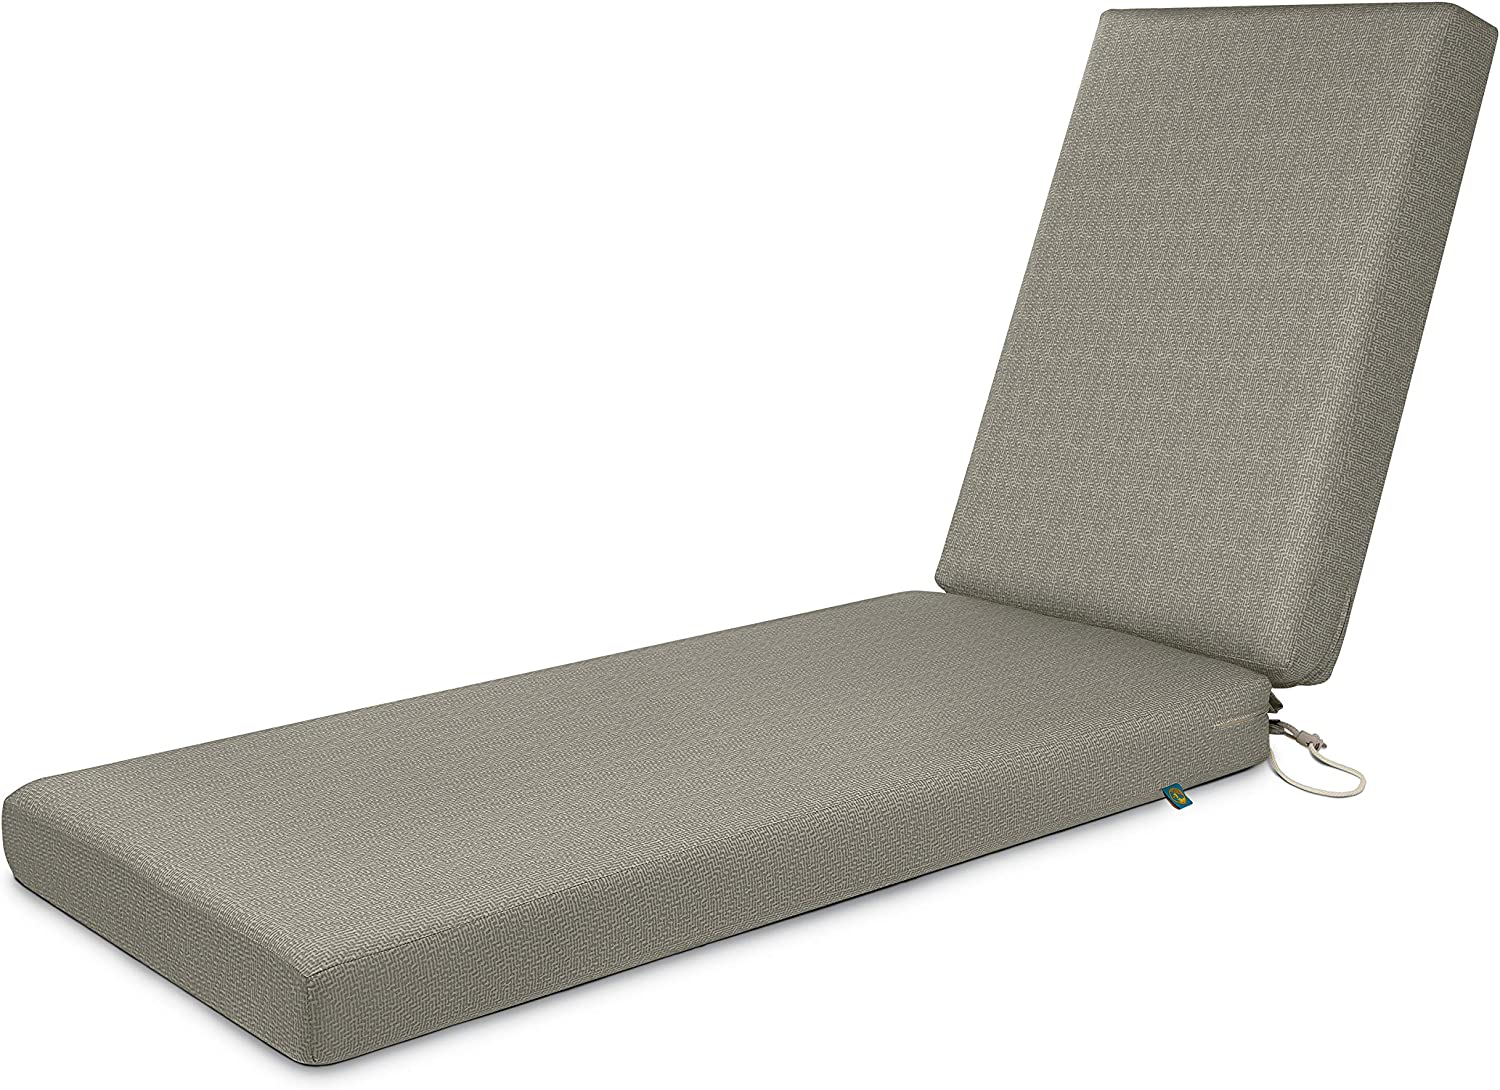 Duck Covers Weekend Water-Resistant Outdoor Chaise Cushion, 80 x